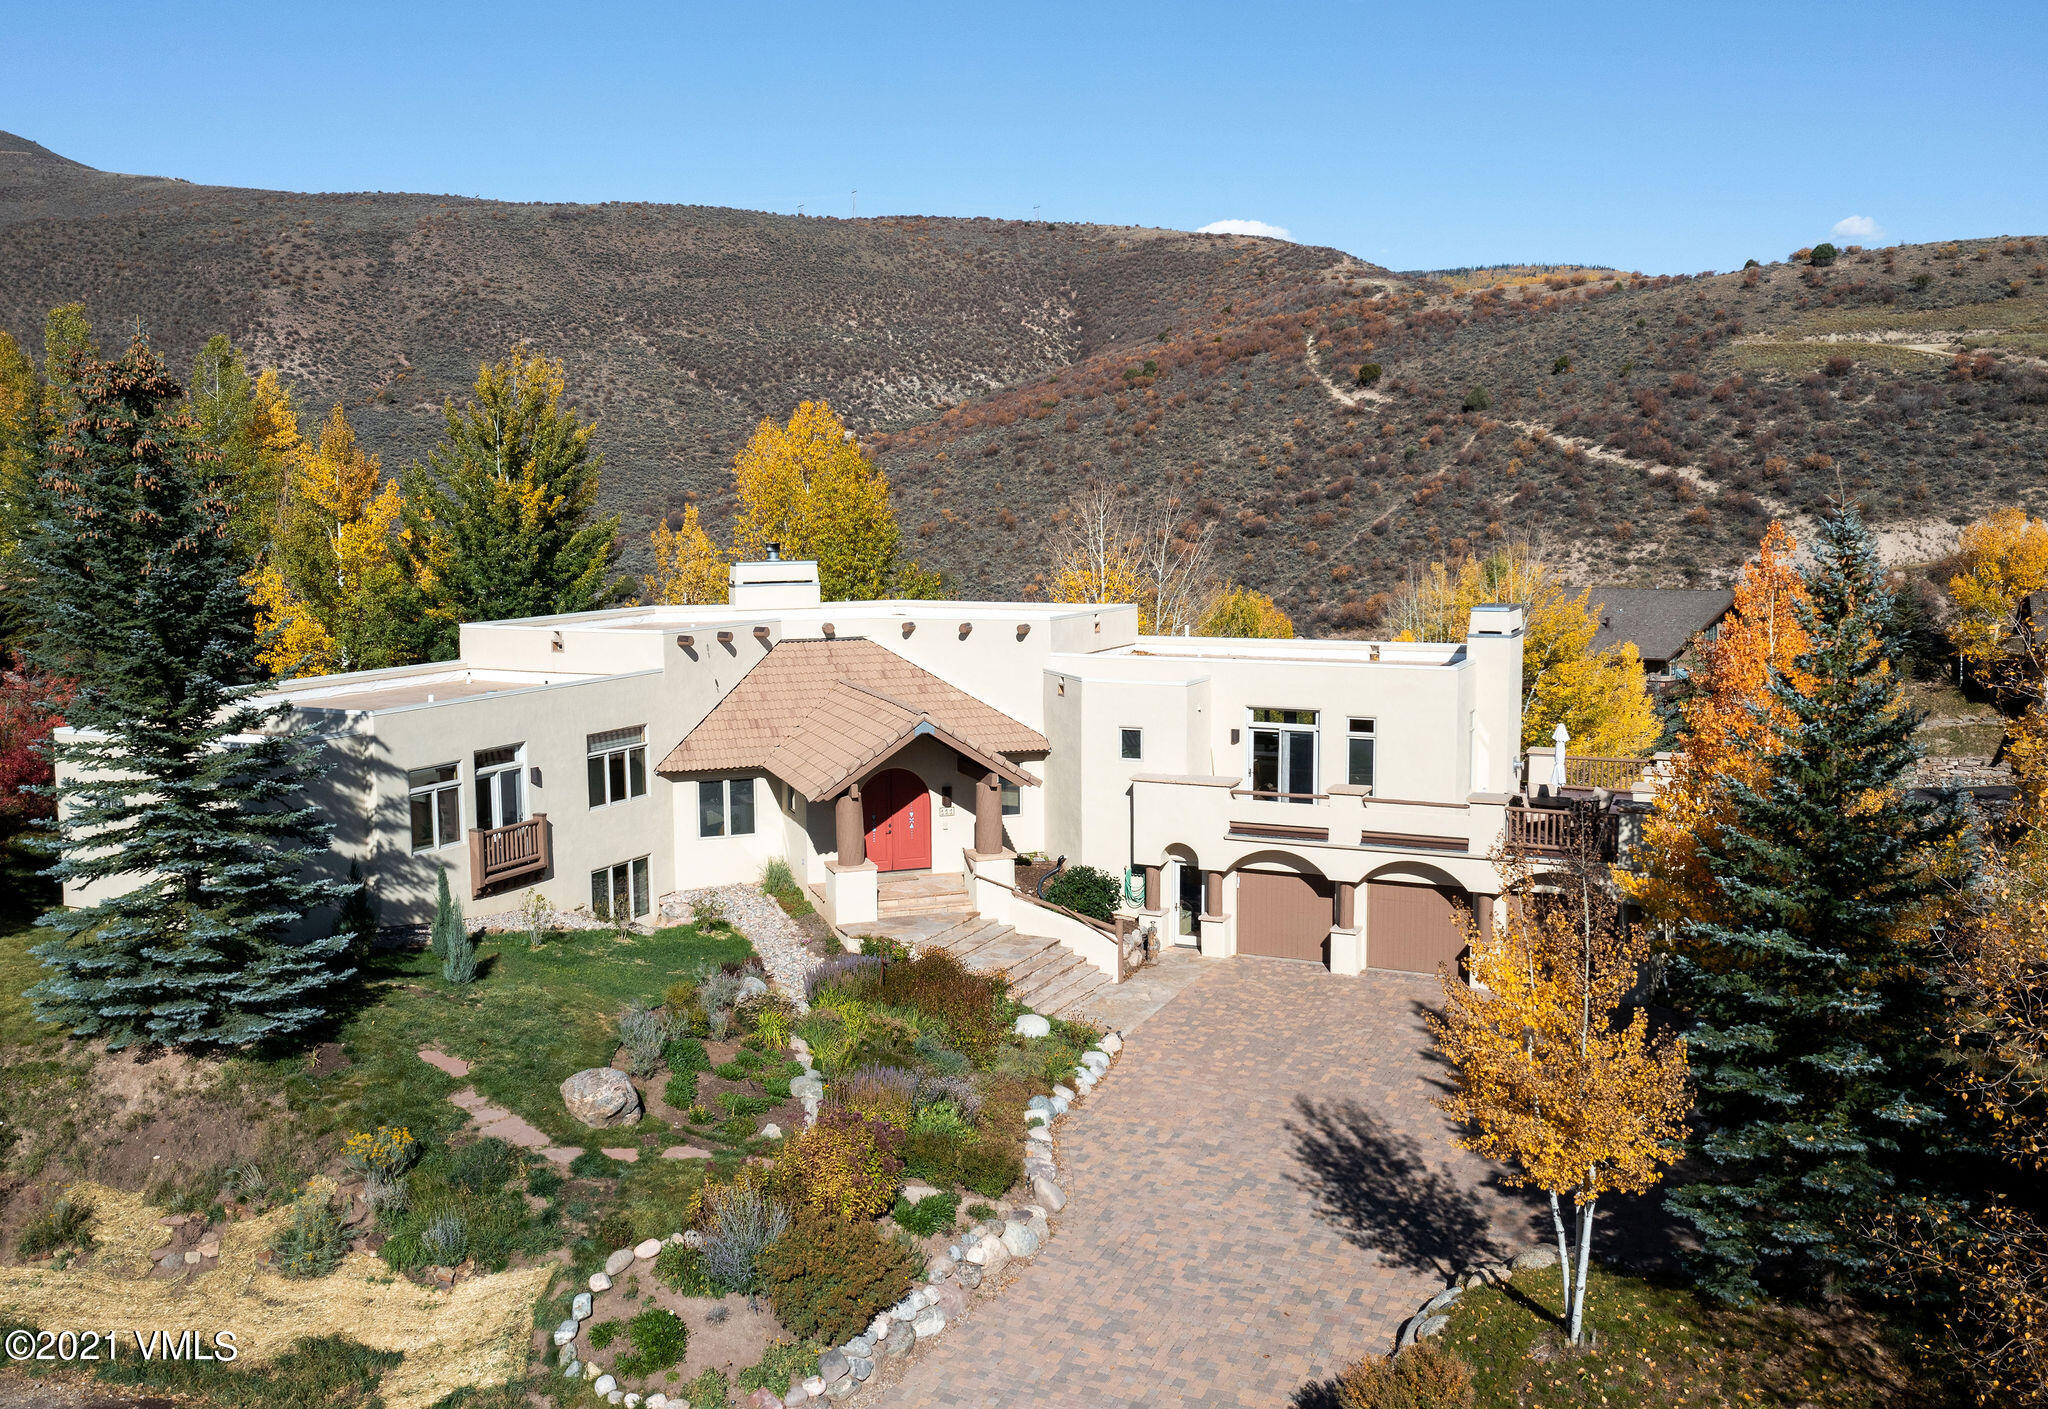 With panoramic views and a peaceful setting on a large homesite, this single-family home offers the best of Singletree.  Located at the end of a quiet street in the upper neighborhood, you will enjoy views of the Sawatch range, Arrowhead Mountain and surrounding beauty from both interior and multiple outdoor living areas.  A  flat paver inlaid driveway with space for several guests welcomes you and provides a warm and impressive sense of entry.  Through grand double front doors, a light-filled open floor plan greets you. The upper level has a living room, office opening to a private outdoor patio complete with hot tub and fire pit, a primary bedroom, dining, kitchen, hearth room and breakfast nook.  On the lower level, 3 guest rooms with en-suite baths, a family room plus game area and an exercise room await.  A mud room leading to a 3-car garage and plenty of storage throughout complete this thoughtful home.  Singletree is a community with an extensive hiking and biking trail system, club and community amenities, parks and close proximity to Edwards.  Minutes to schools, skiing, fishing, shops and restaurants.